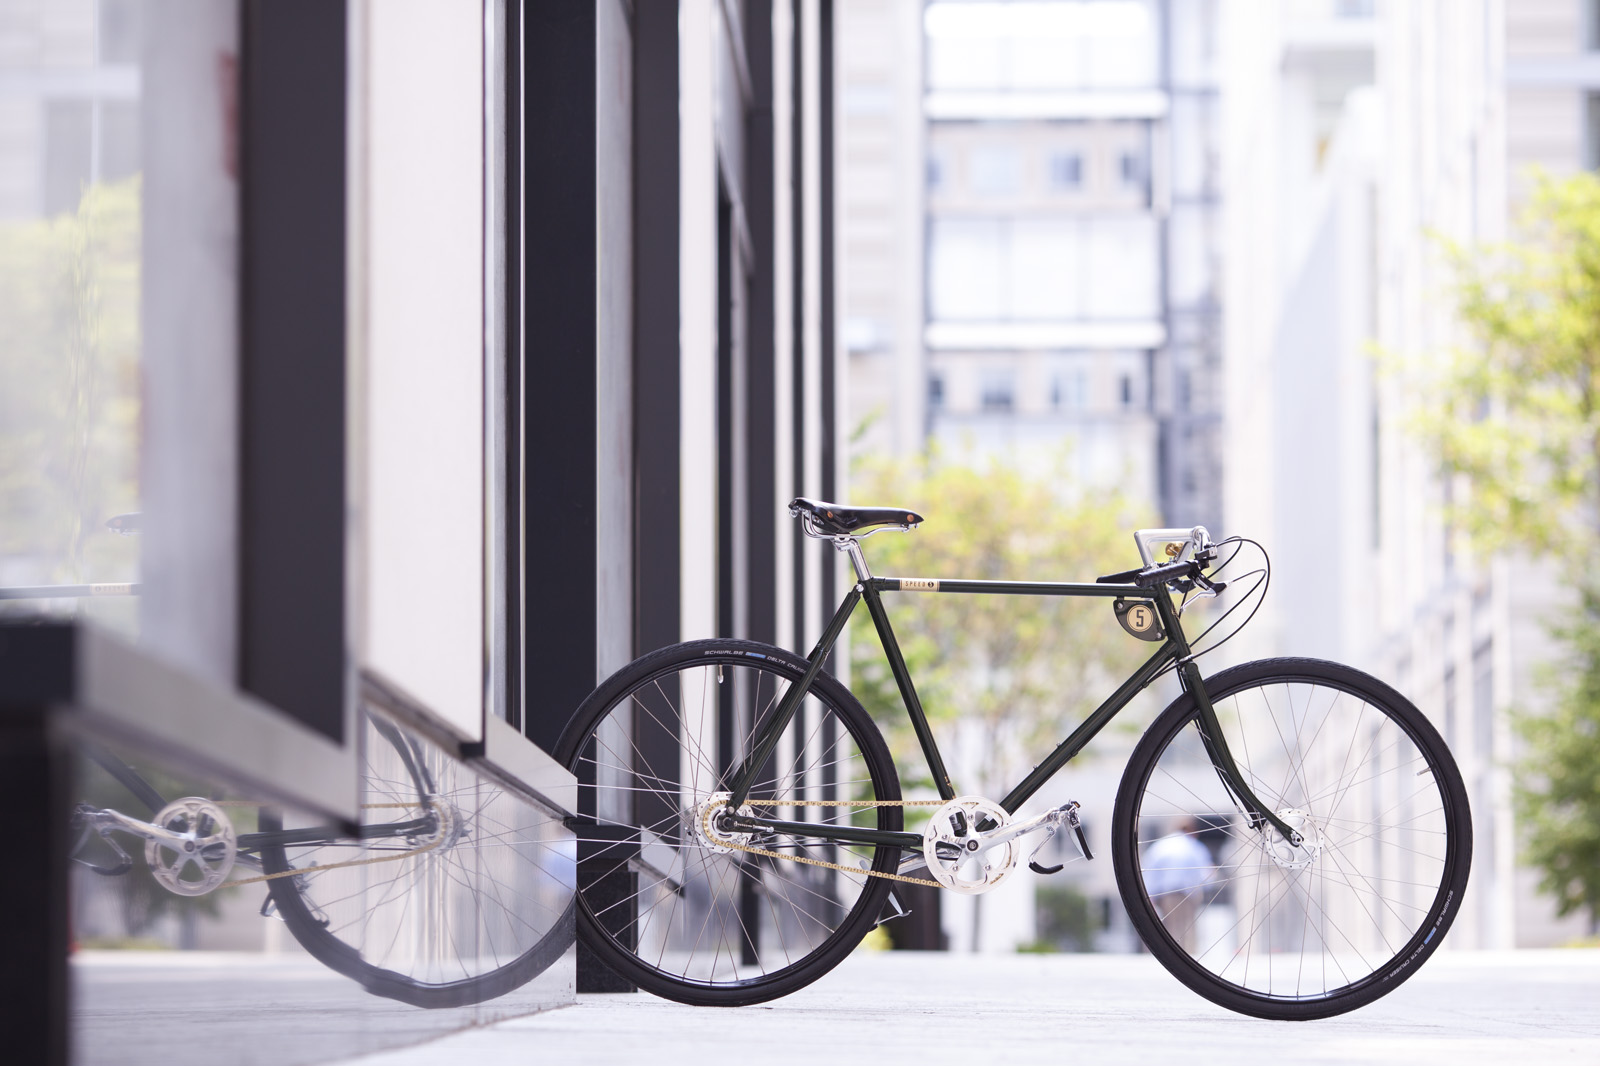 BicycleSPACE is the ex  clusive Washington-area dealer of classic Pashley Cycles, such as thisGuvnor model